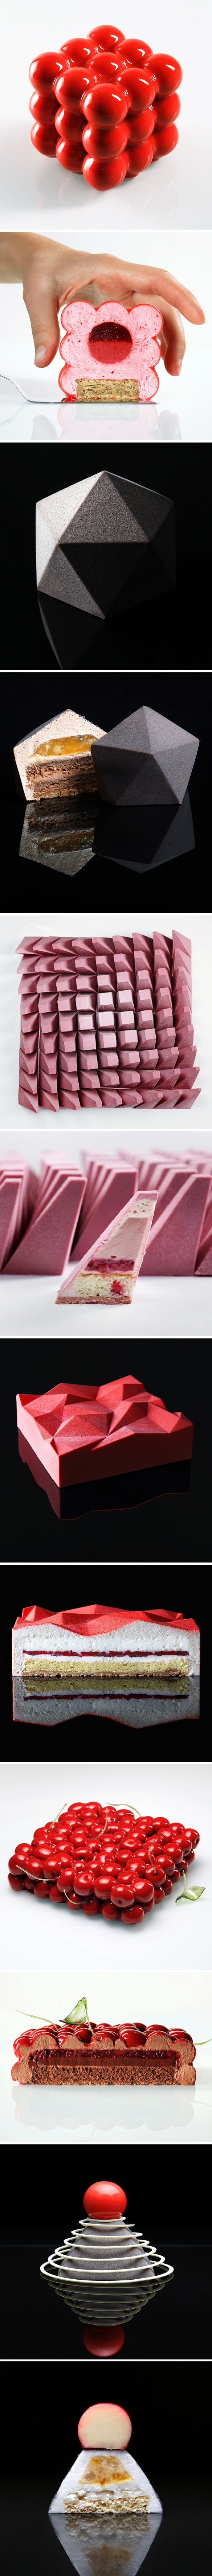 edible art! cakes by architect turned pastry chef dinara kasko <3